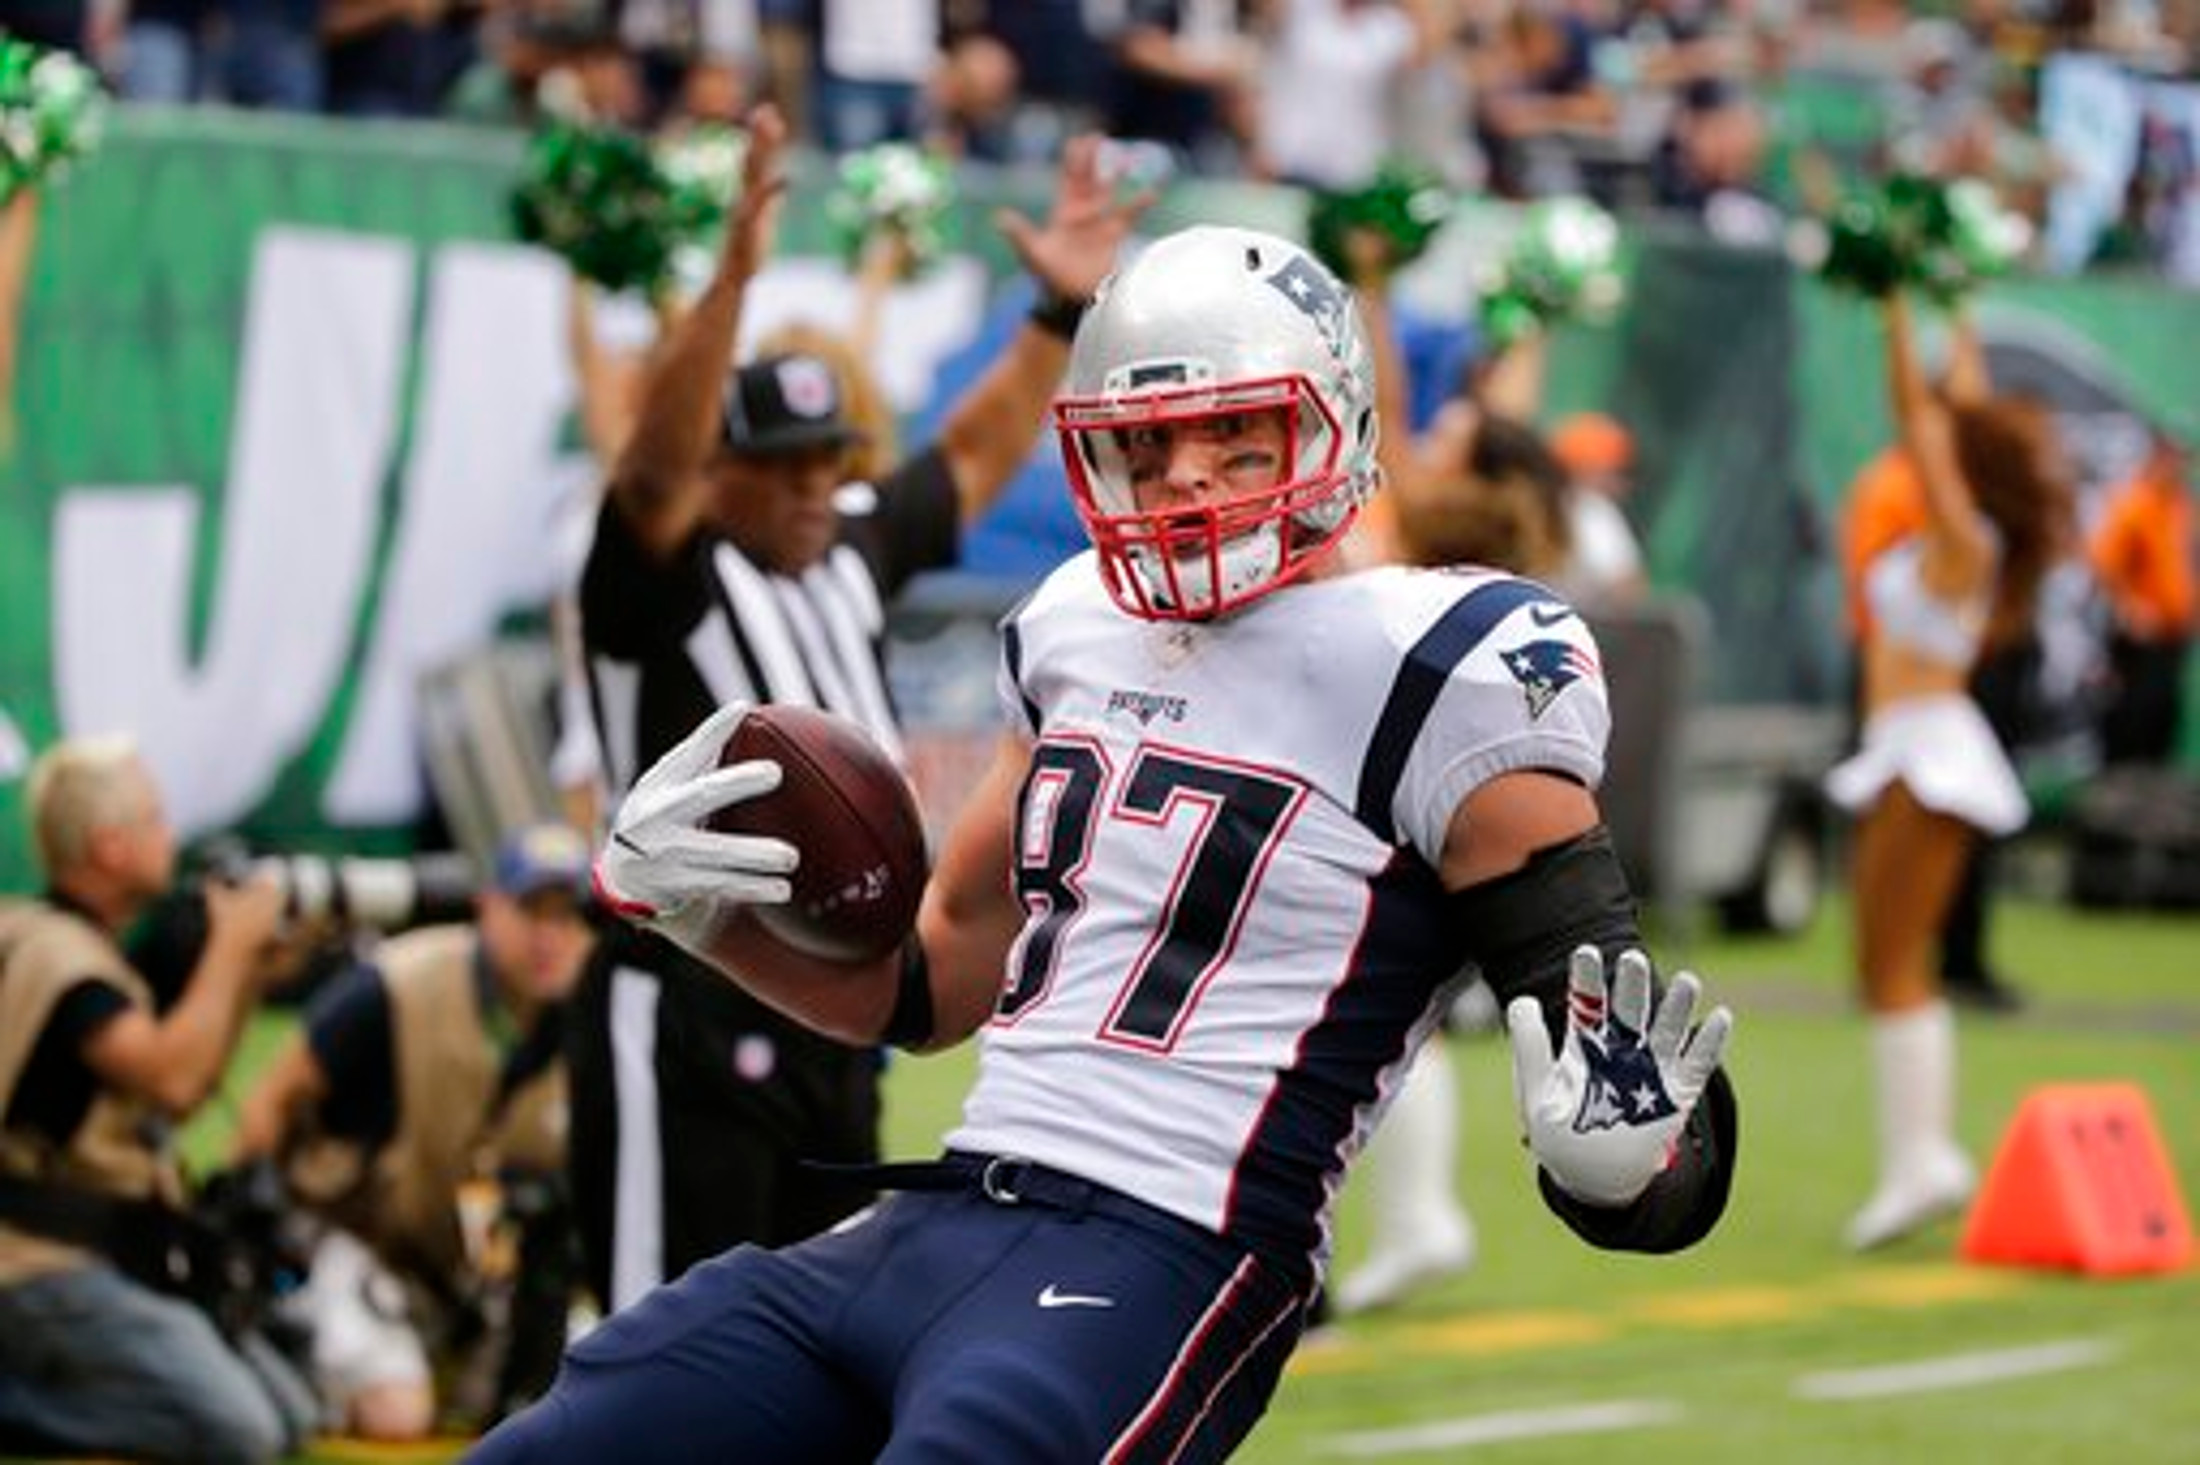 New England Patriots' Rob Gronkowski (87) runs away from New York Jets' Marcus Maye for a touchdown during the second half of an NFL football game, Sunday, Oct. 15, 2017, in East Rutherford, N.J. (Seth Wenig/AP Photo)